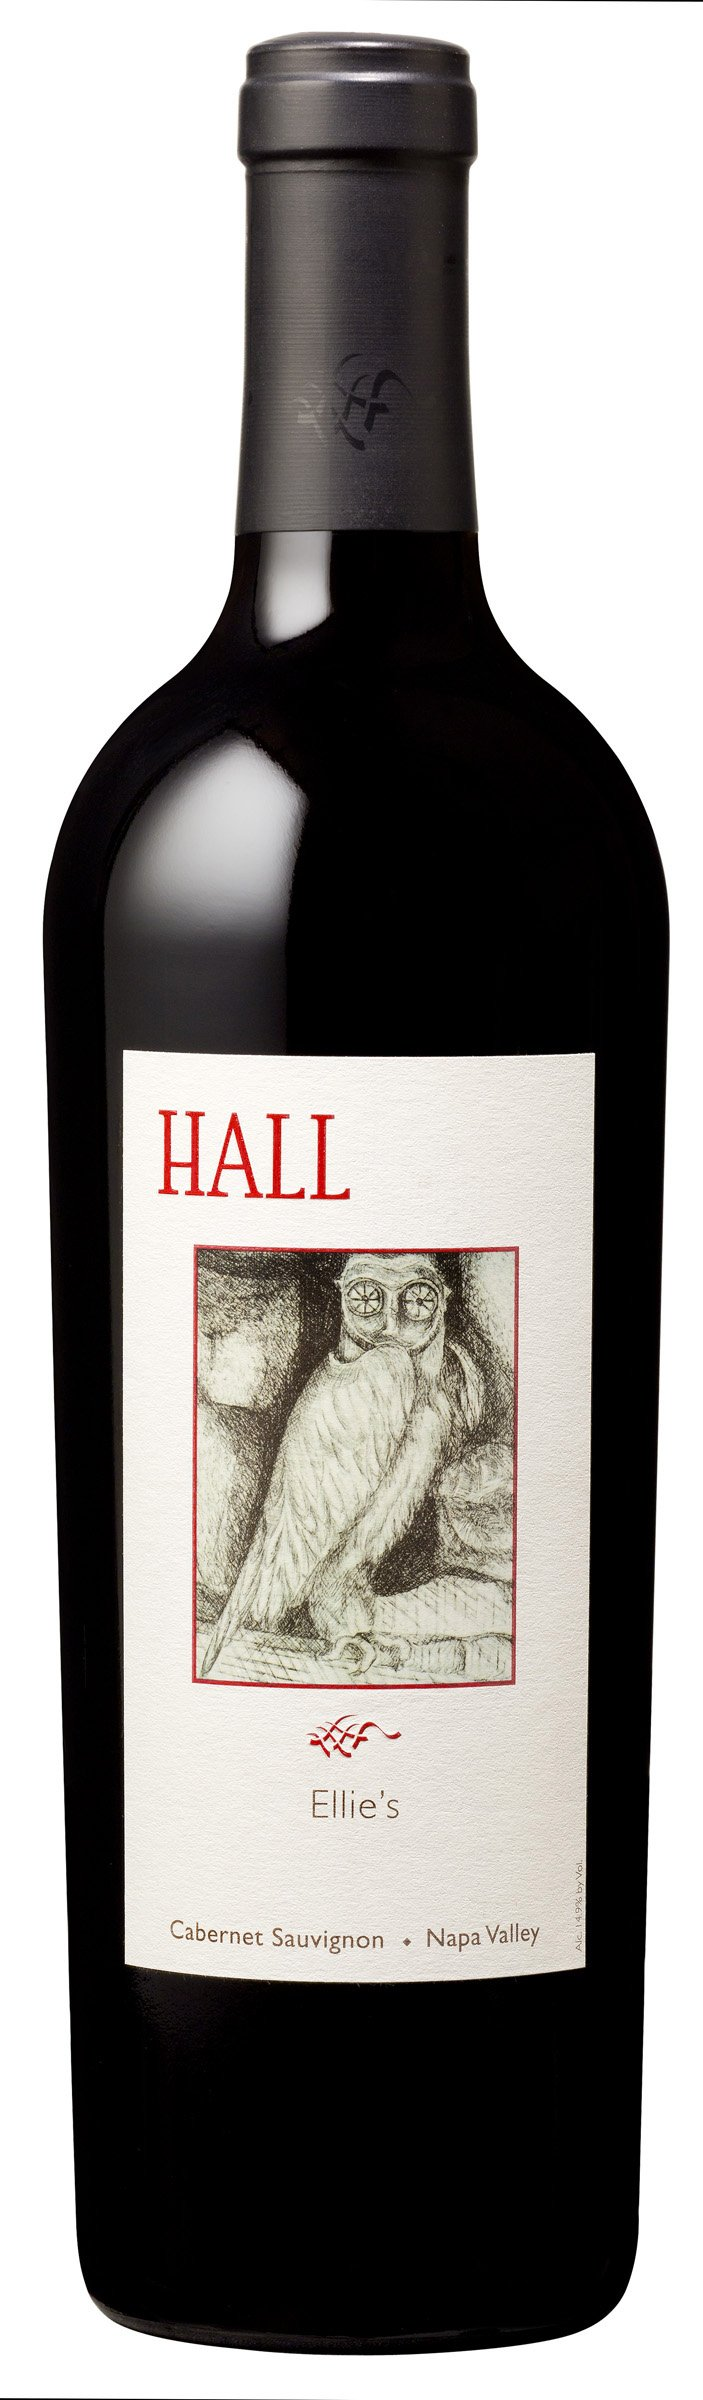 "2010 Hall Cabernet Sauvignon Napa Valley ""Ellie's"""